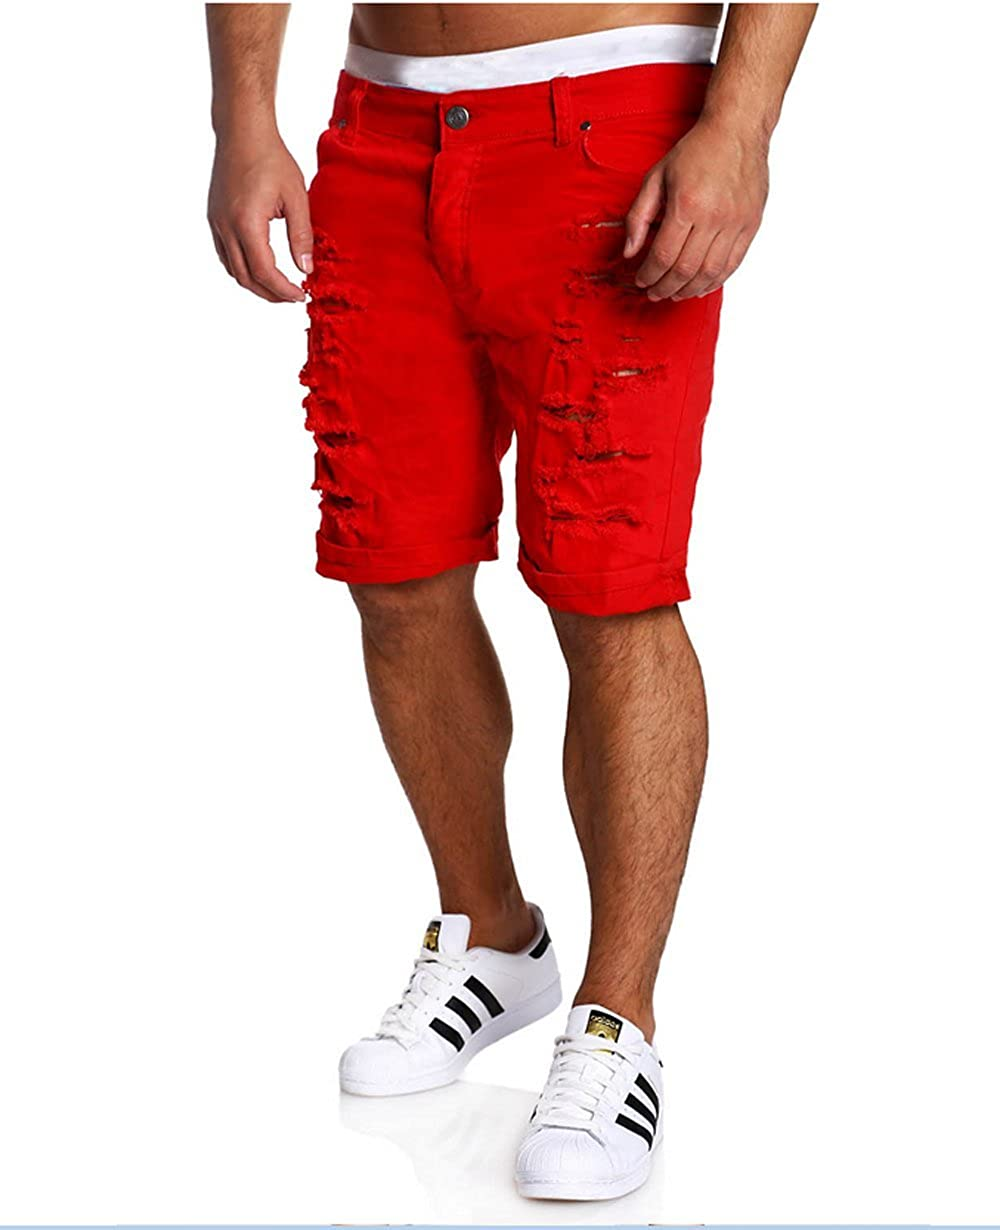 leveltech Mens Shorts Jeans Slim Knee Length Hole Ripped Pants